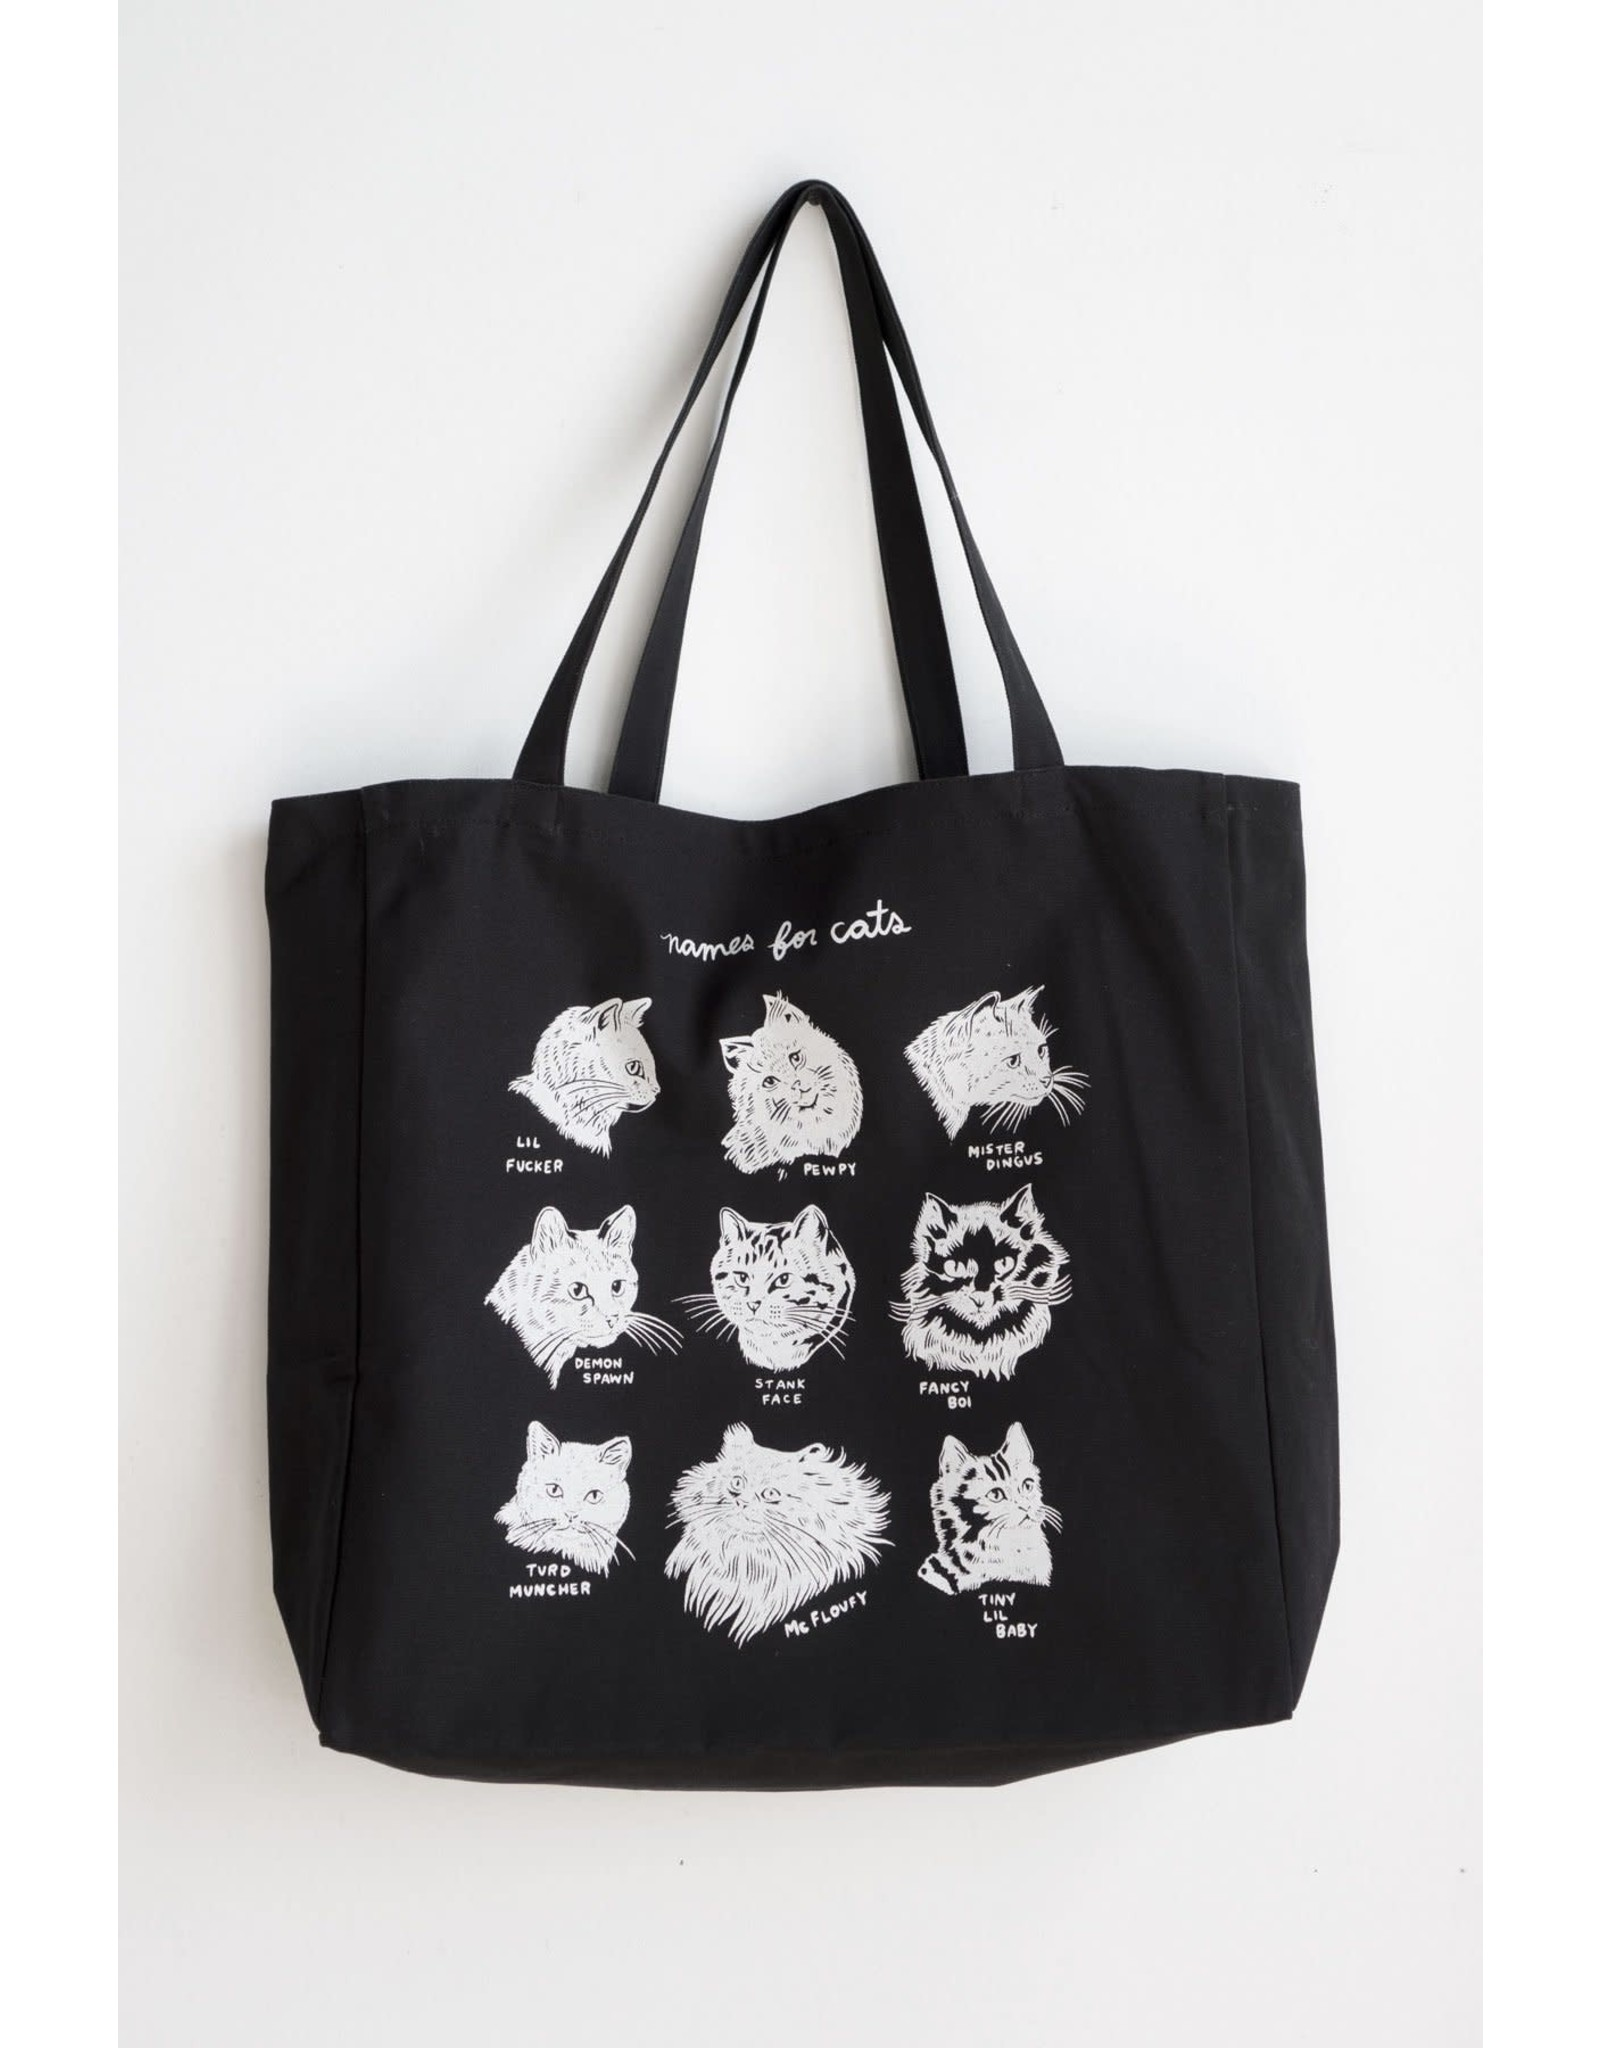 Stay Home Club - XL Tote Bag/Names For Cats Black